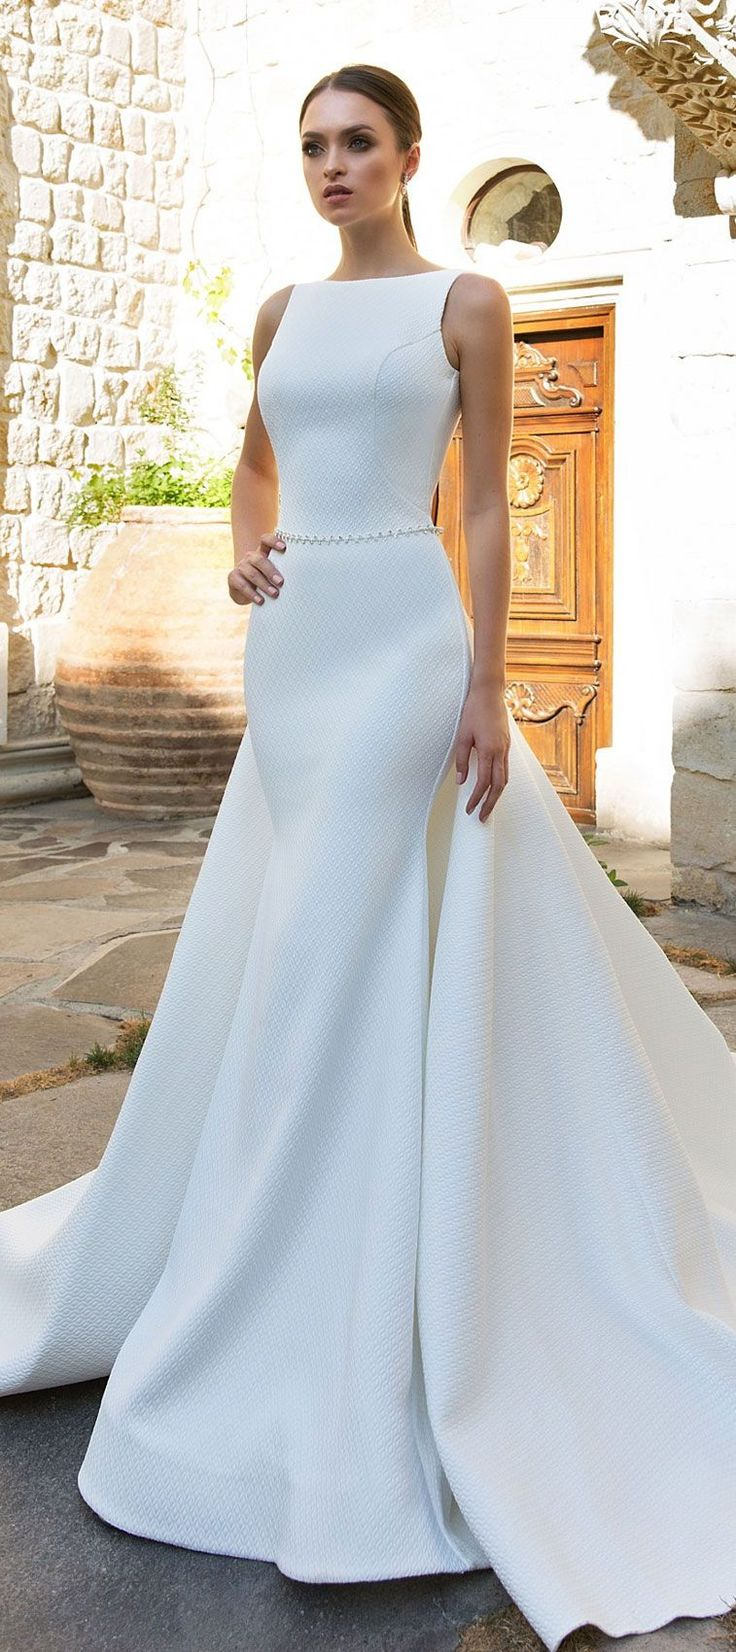 1530 best Amazing Wedding Dresses images on Pinterest | Weddings ...